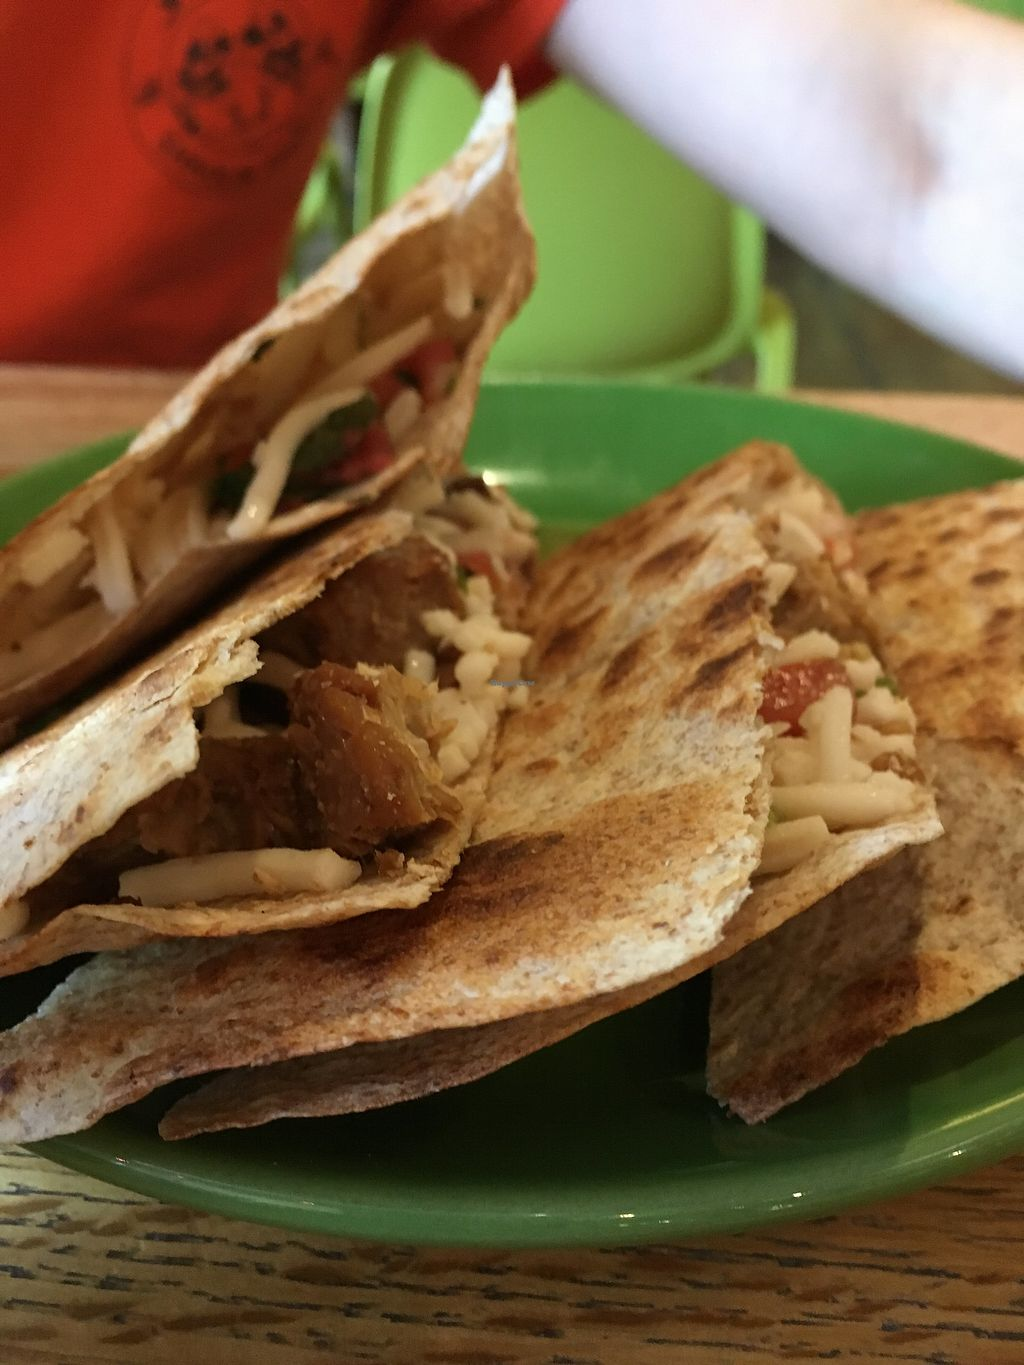 "Photo of Laughing Planet Cafe - Ecotrust  by <a href=""/members/profile/slo0go"">slo0go</a> <br/>Vegan quesadilla <br/> March 23, 2018  - <a href='/contact/abuse/image/18927/374638'>Report</a>"